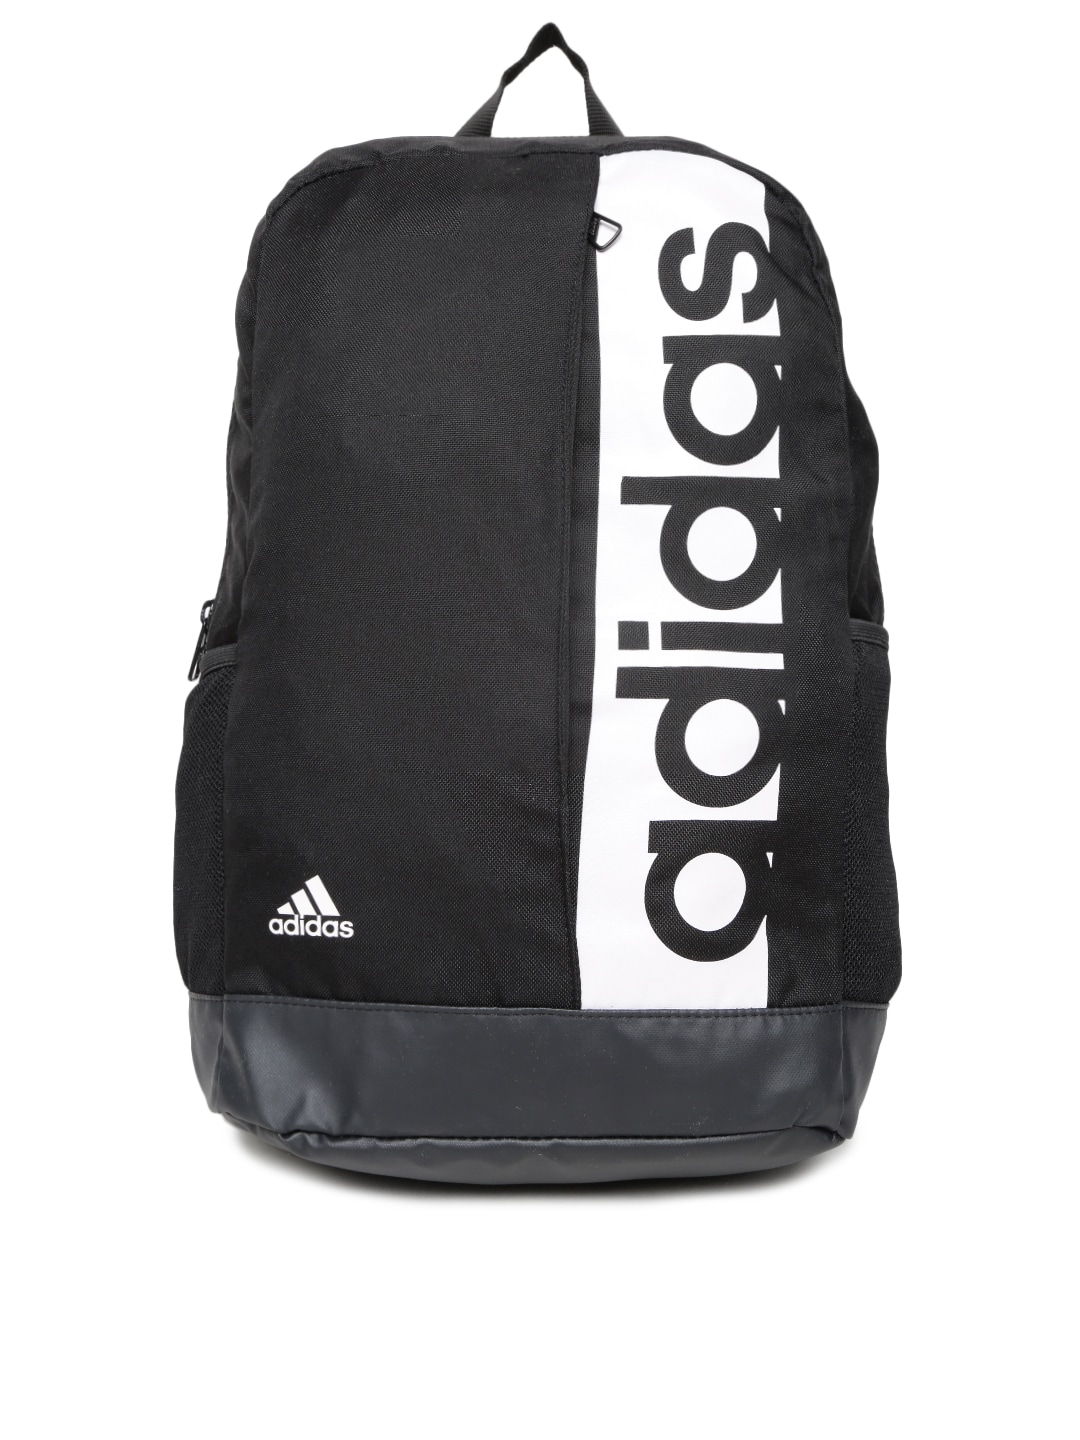 adidas Backpacks - Buy adidas Backpacks Online in India | Myntra